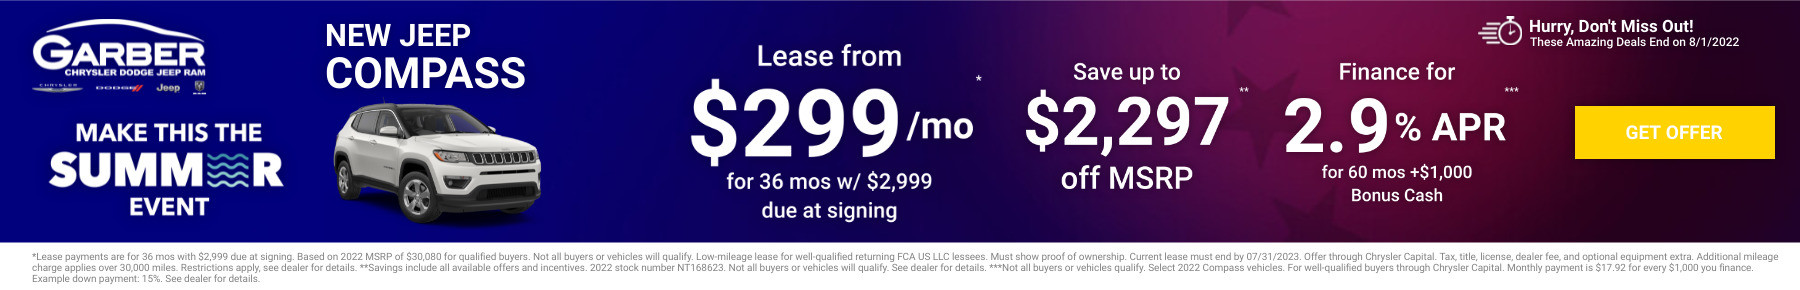 New Jeep Compass Current Deals and Offers in Green Cove Springs, FL